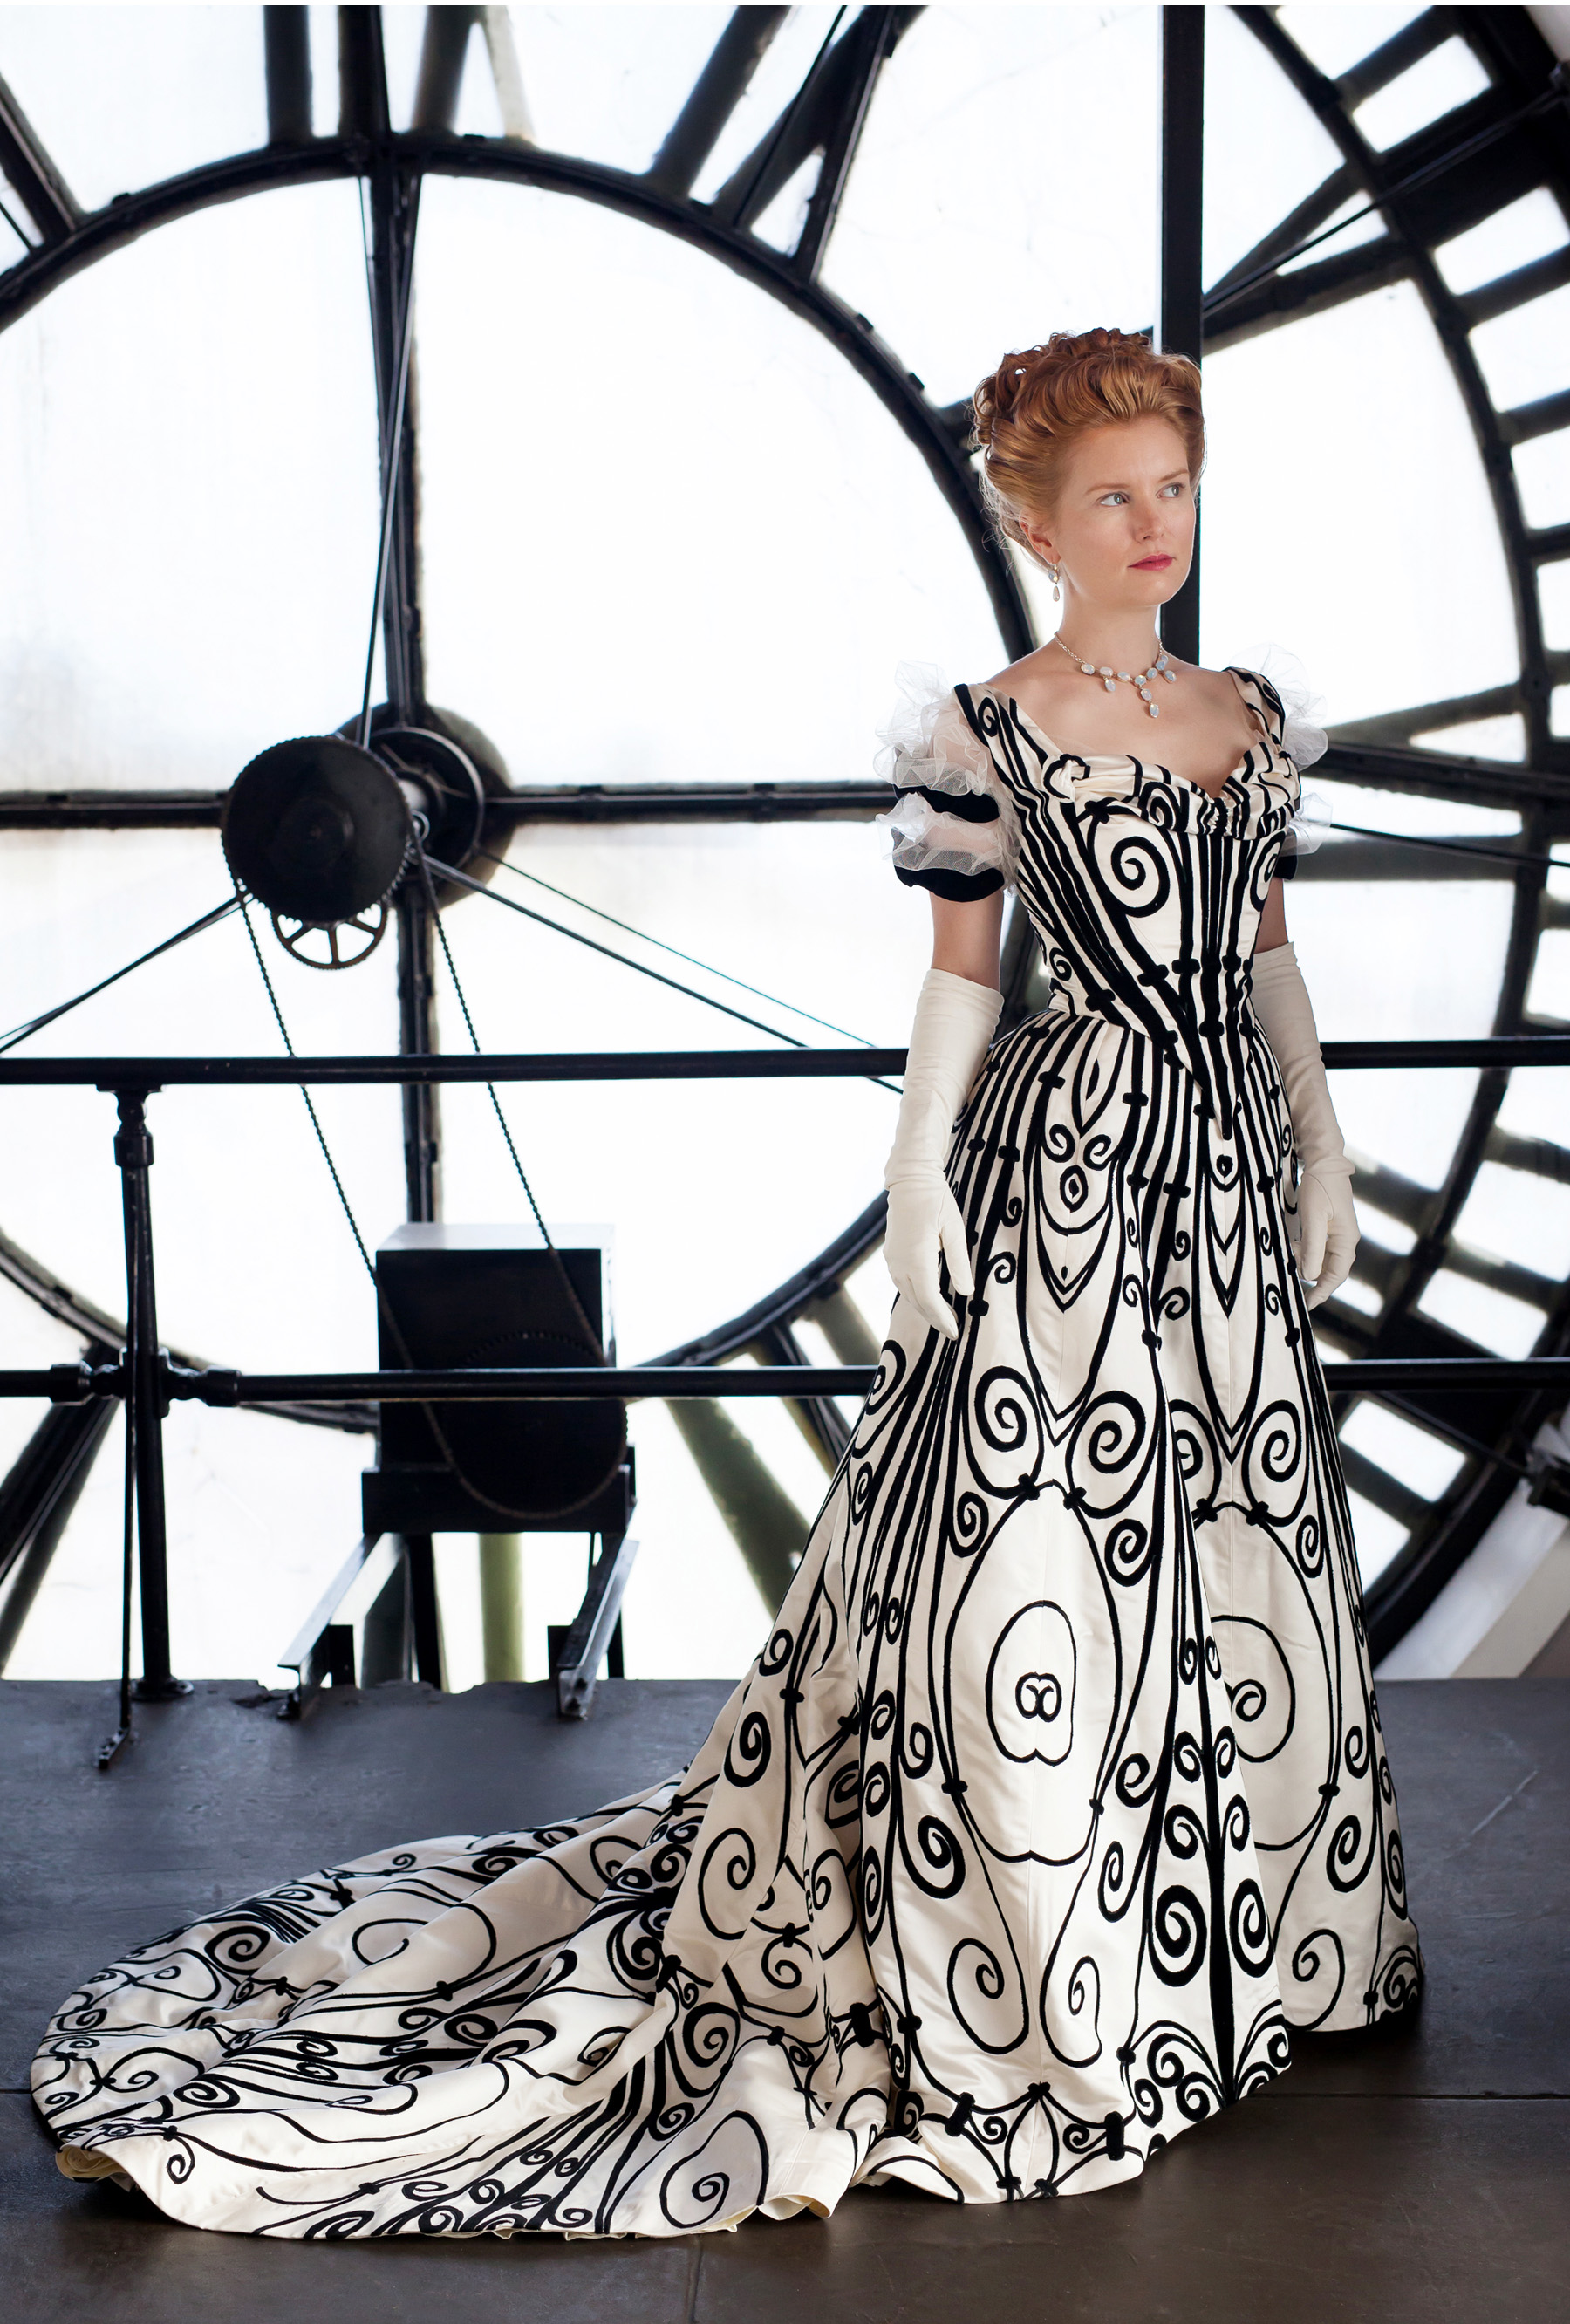 Cynthia Settje of Redthreaded models her Worth Gown photographed in Denver Clocktower by photographer Jennifer Koskinen, Merritt Portrait Studio